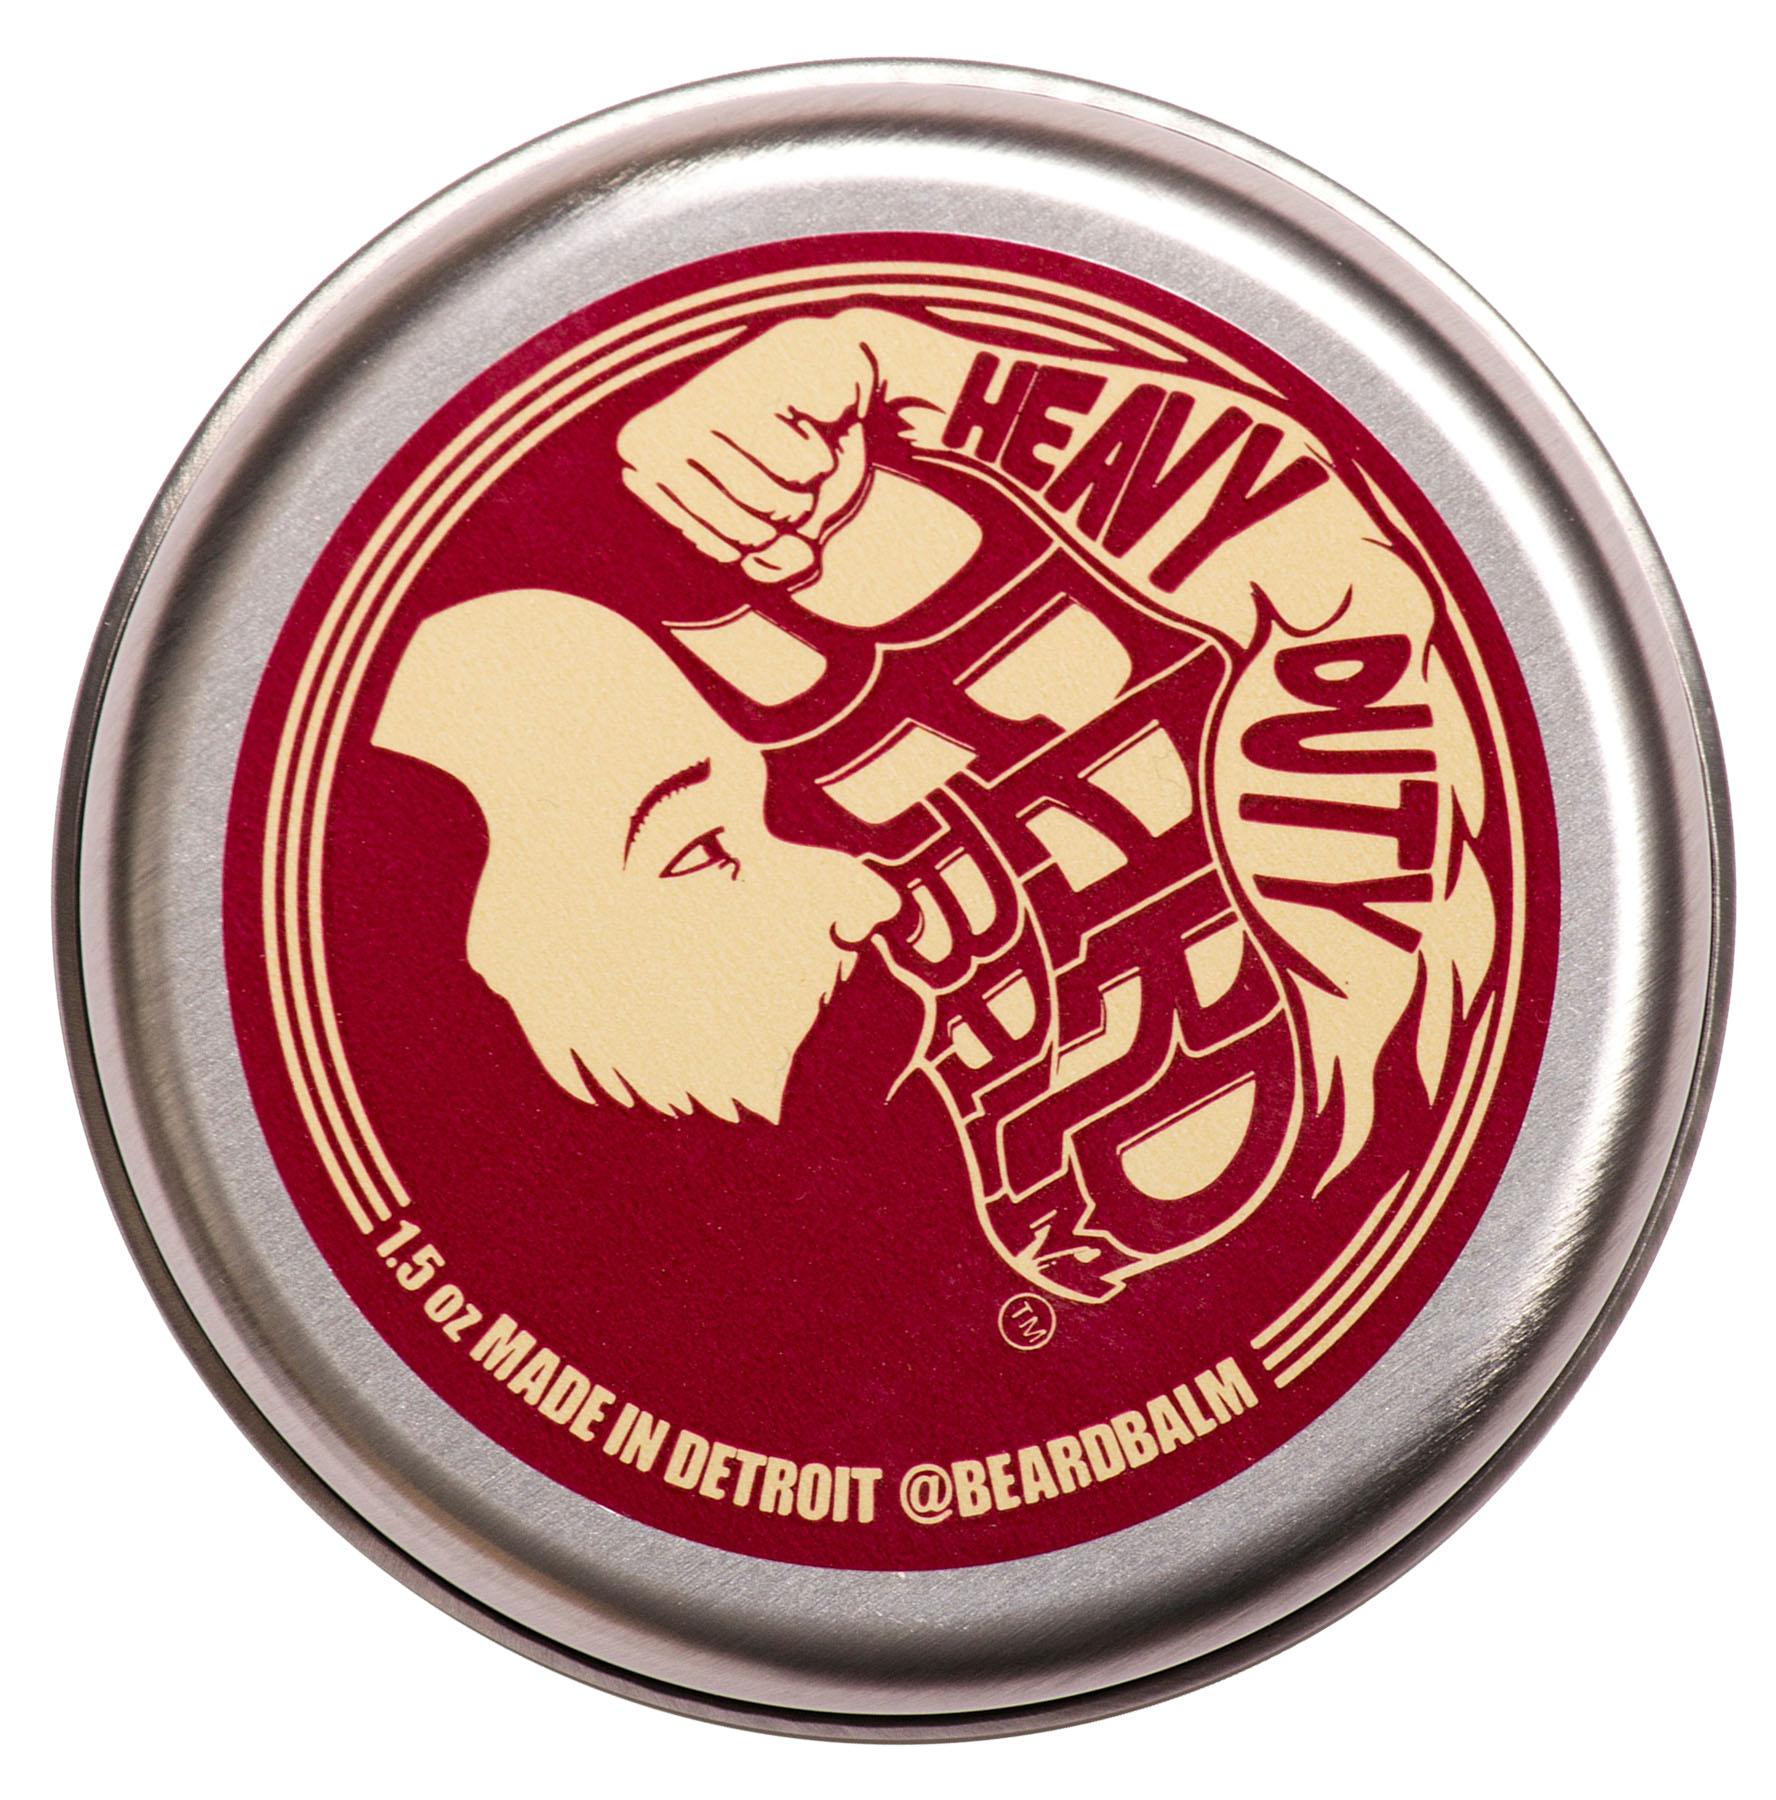 Beard Balm, Heavy Duty - All-Natural Beard Styling Aid, leave-in Conditioner , 1.5 oz Can